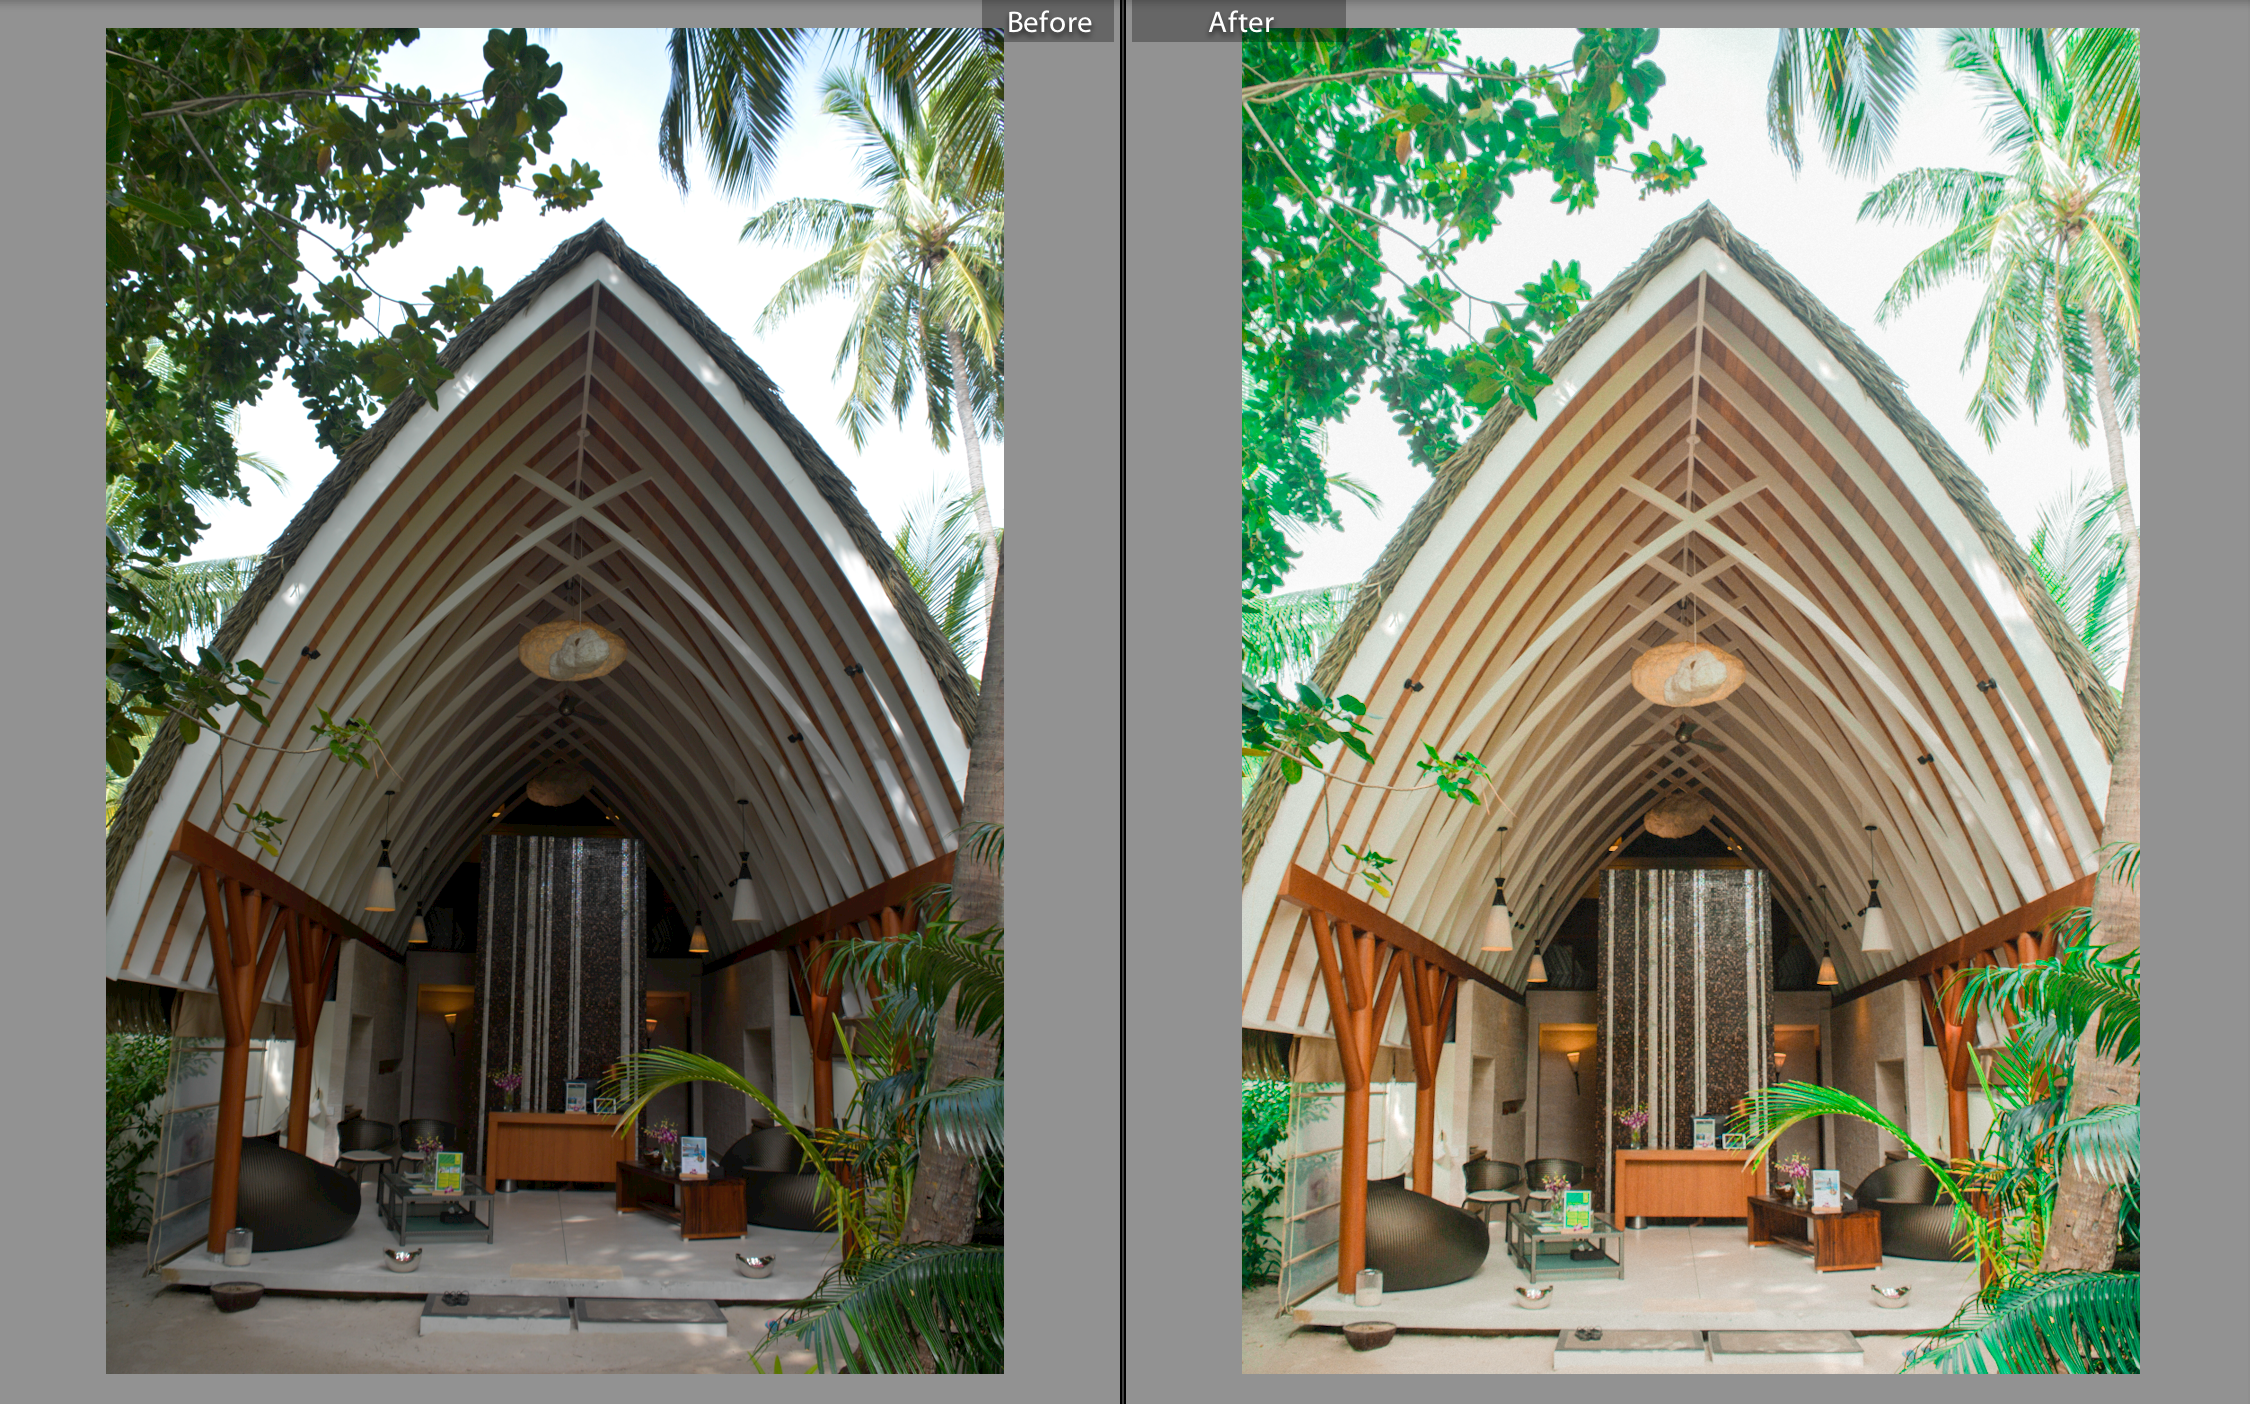 9 Totally Free Lightroom Presets To Enhance Your Photos